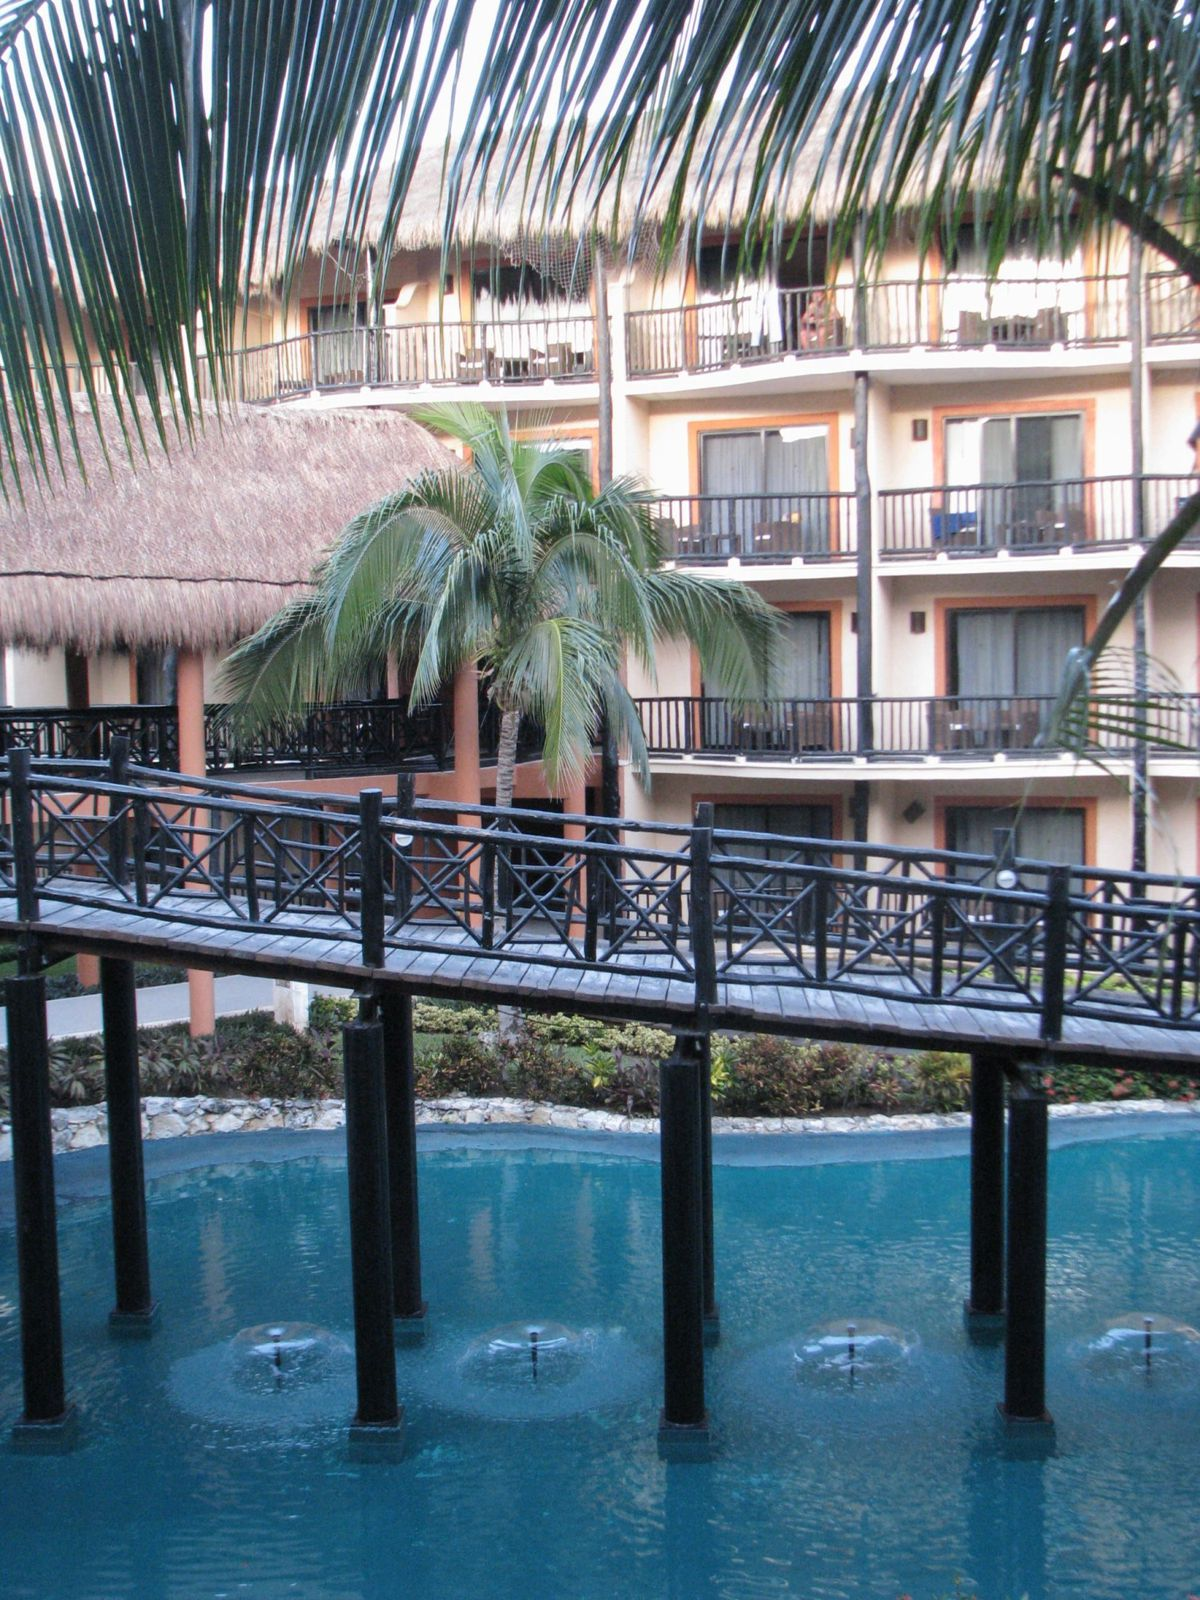 Mexique - Hotel Catalonia Yucatan